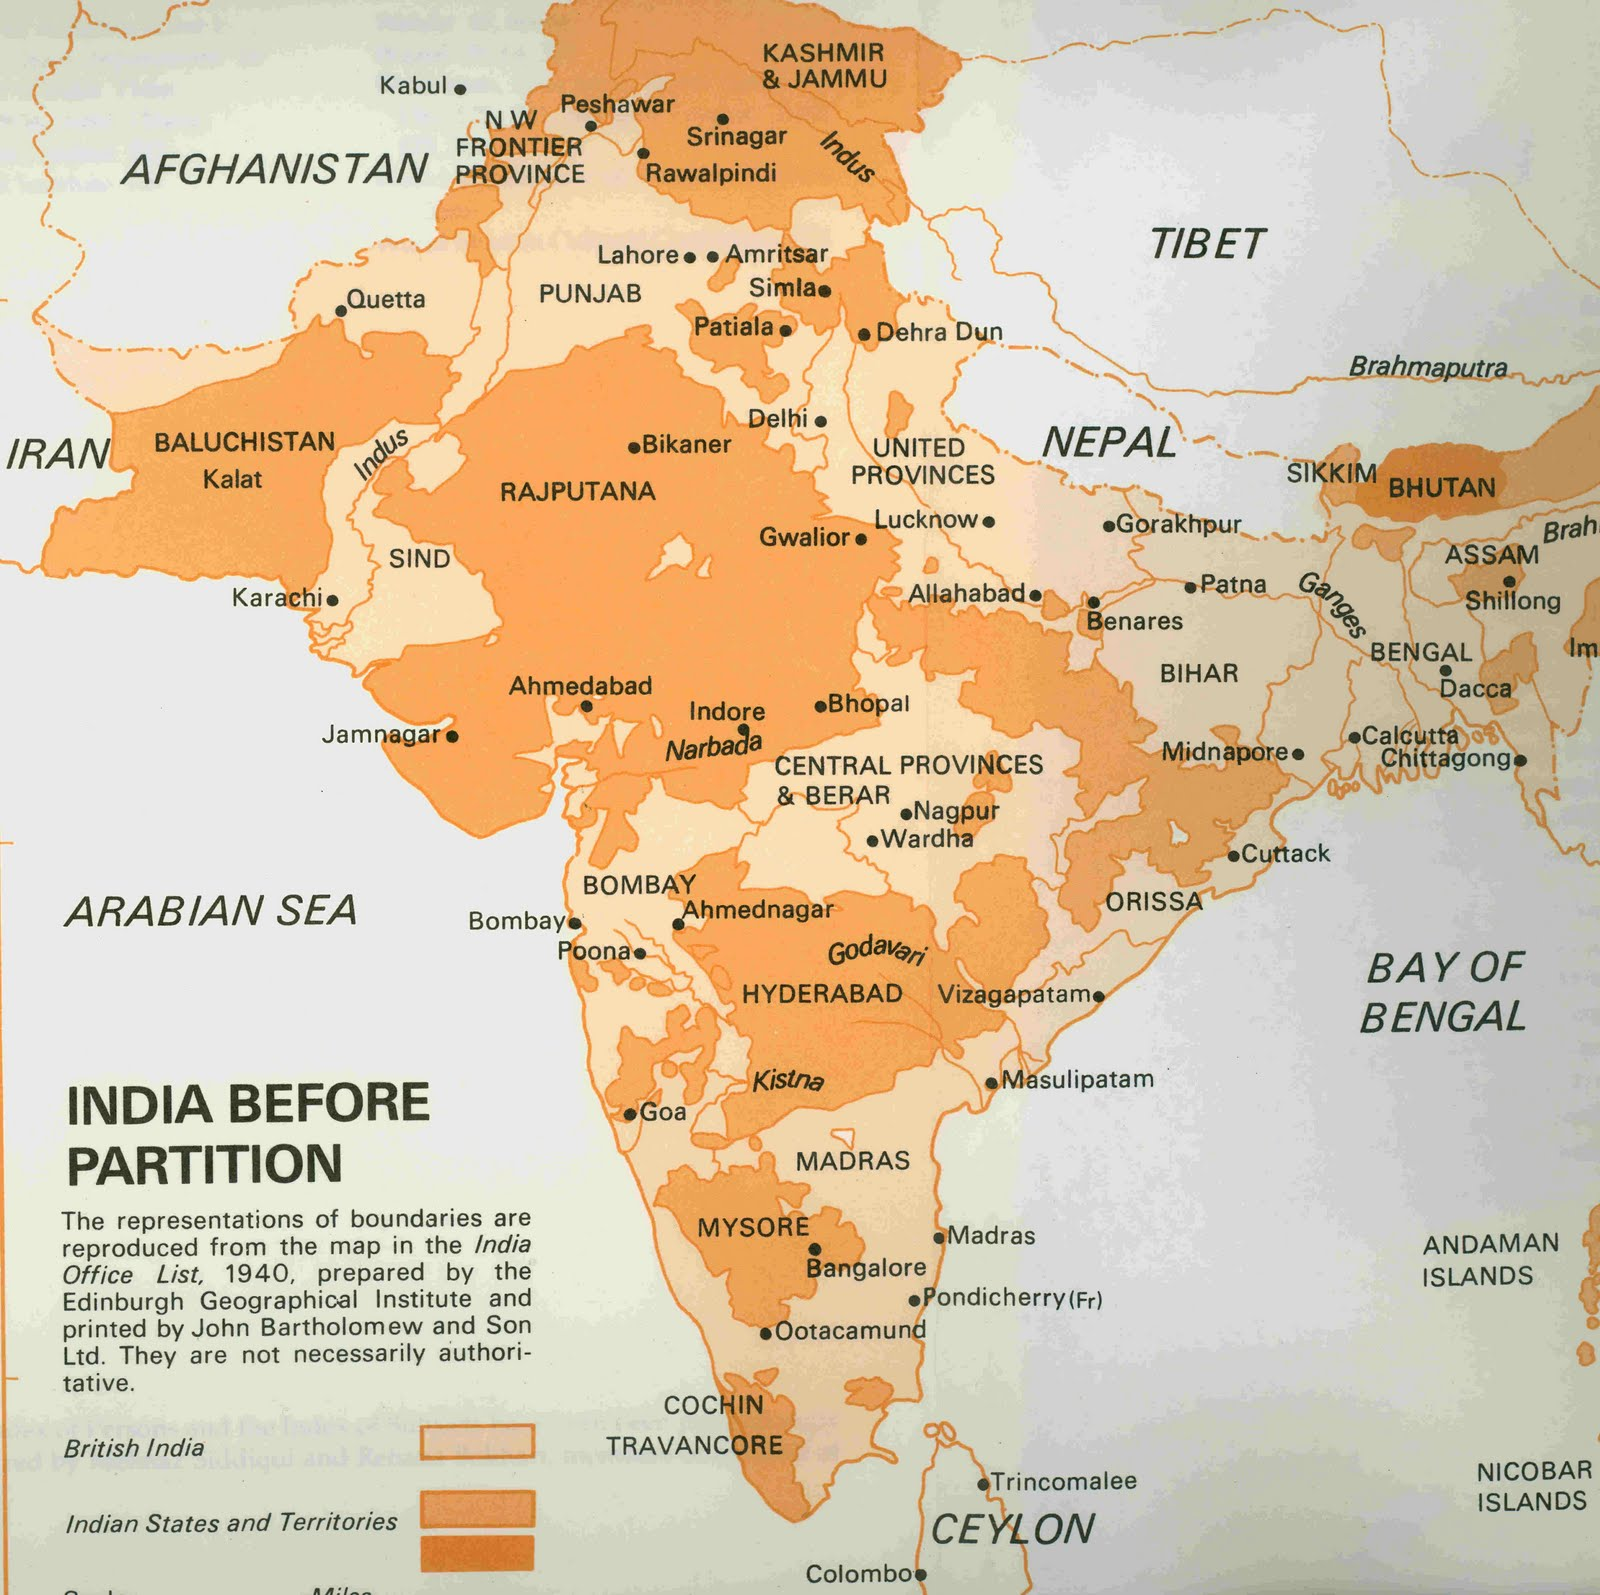 after the independence under the able guidance of the iron man of india sardar vallabhai patel 565 princely states were united to form